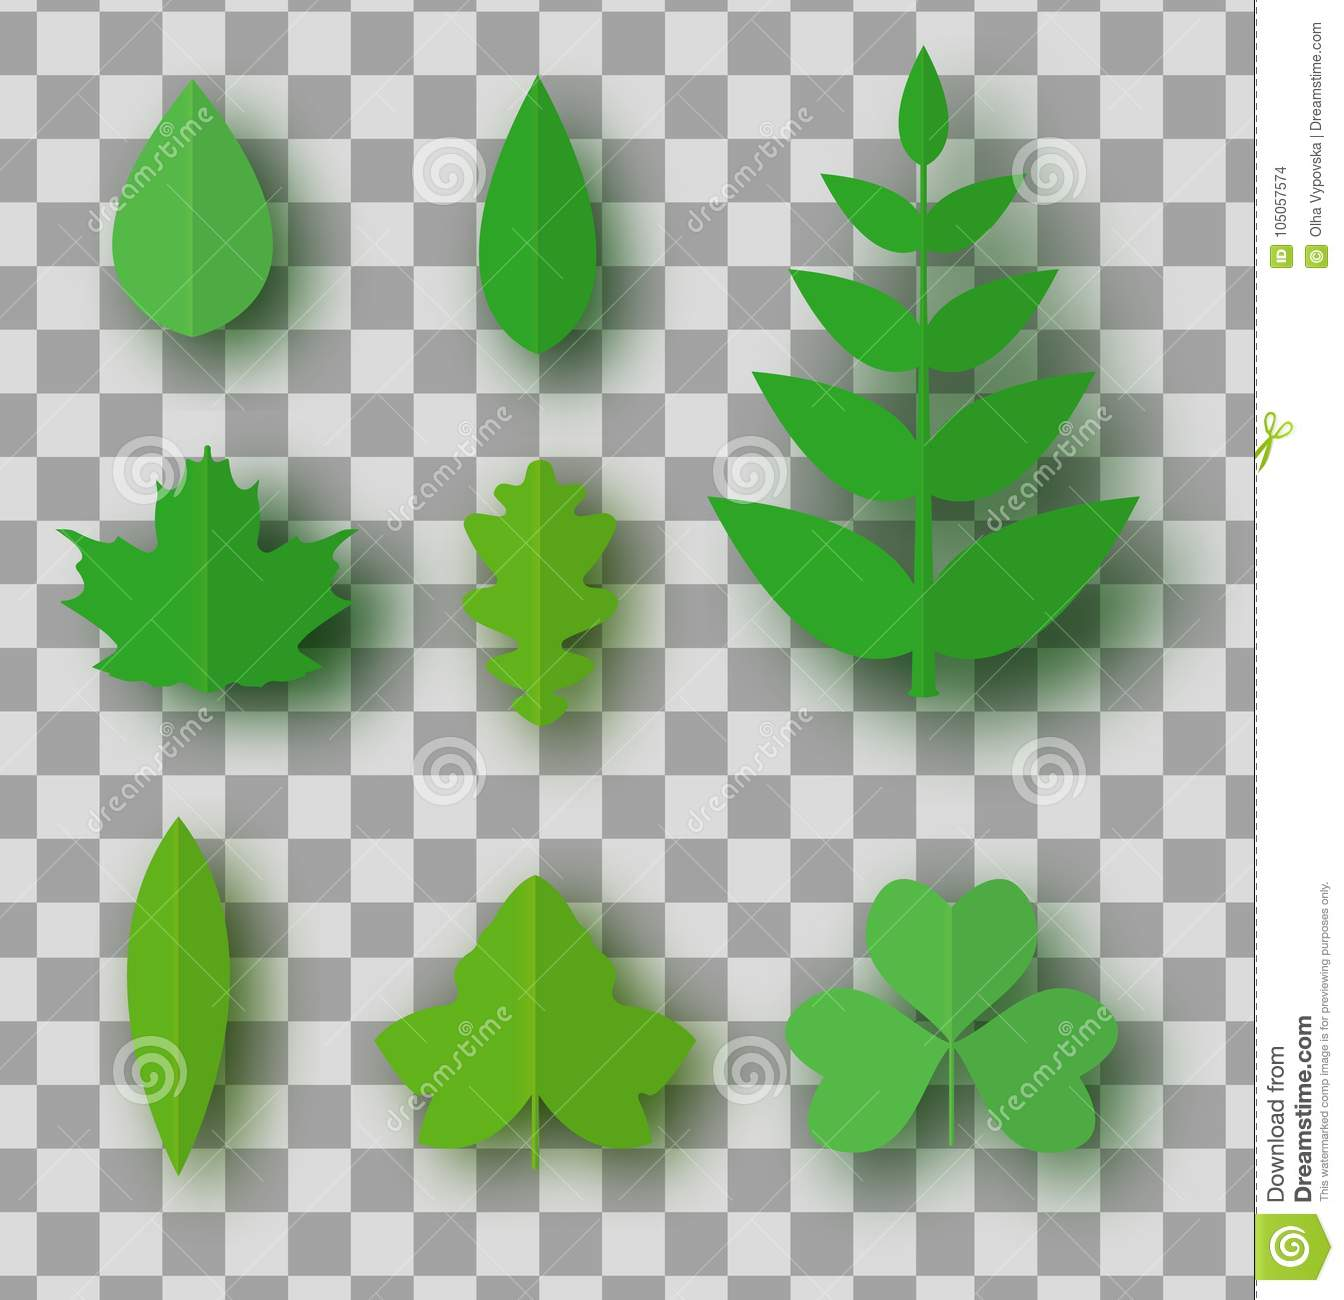 3d abstrat paper art set with paper cut green leaves isolated on